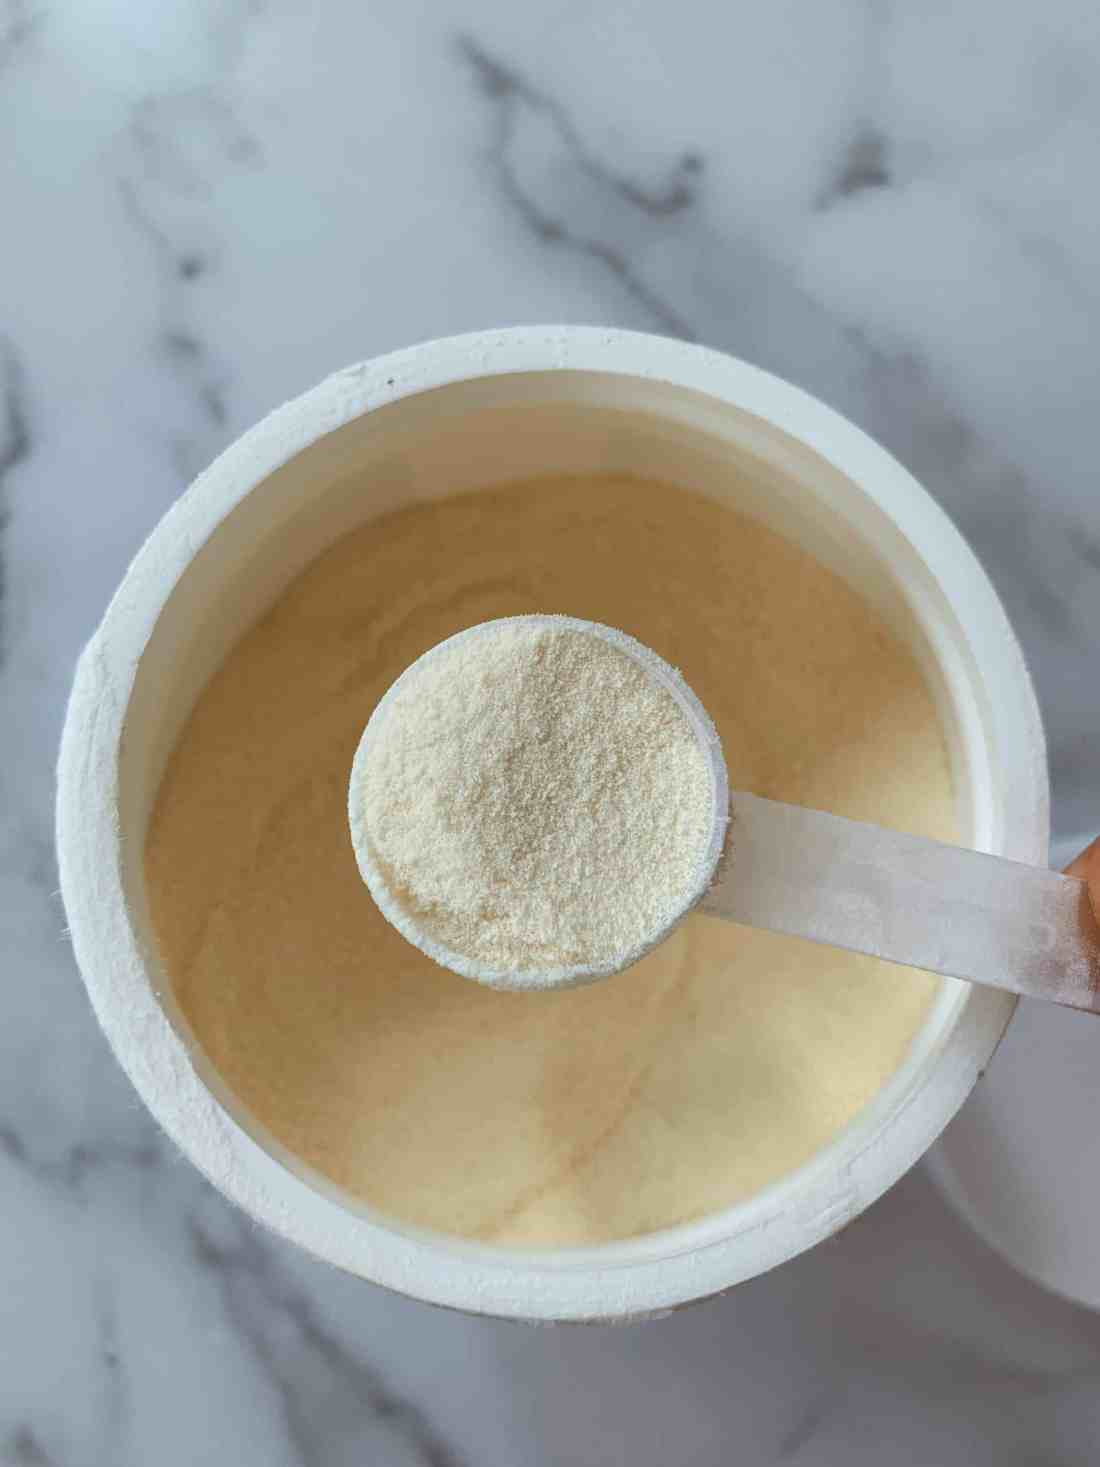 A scoop of Perfect Hydrolyzed Collagen.